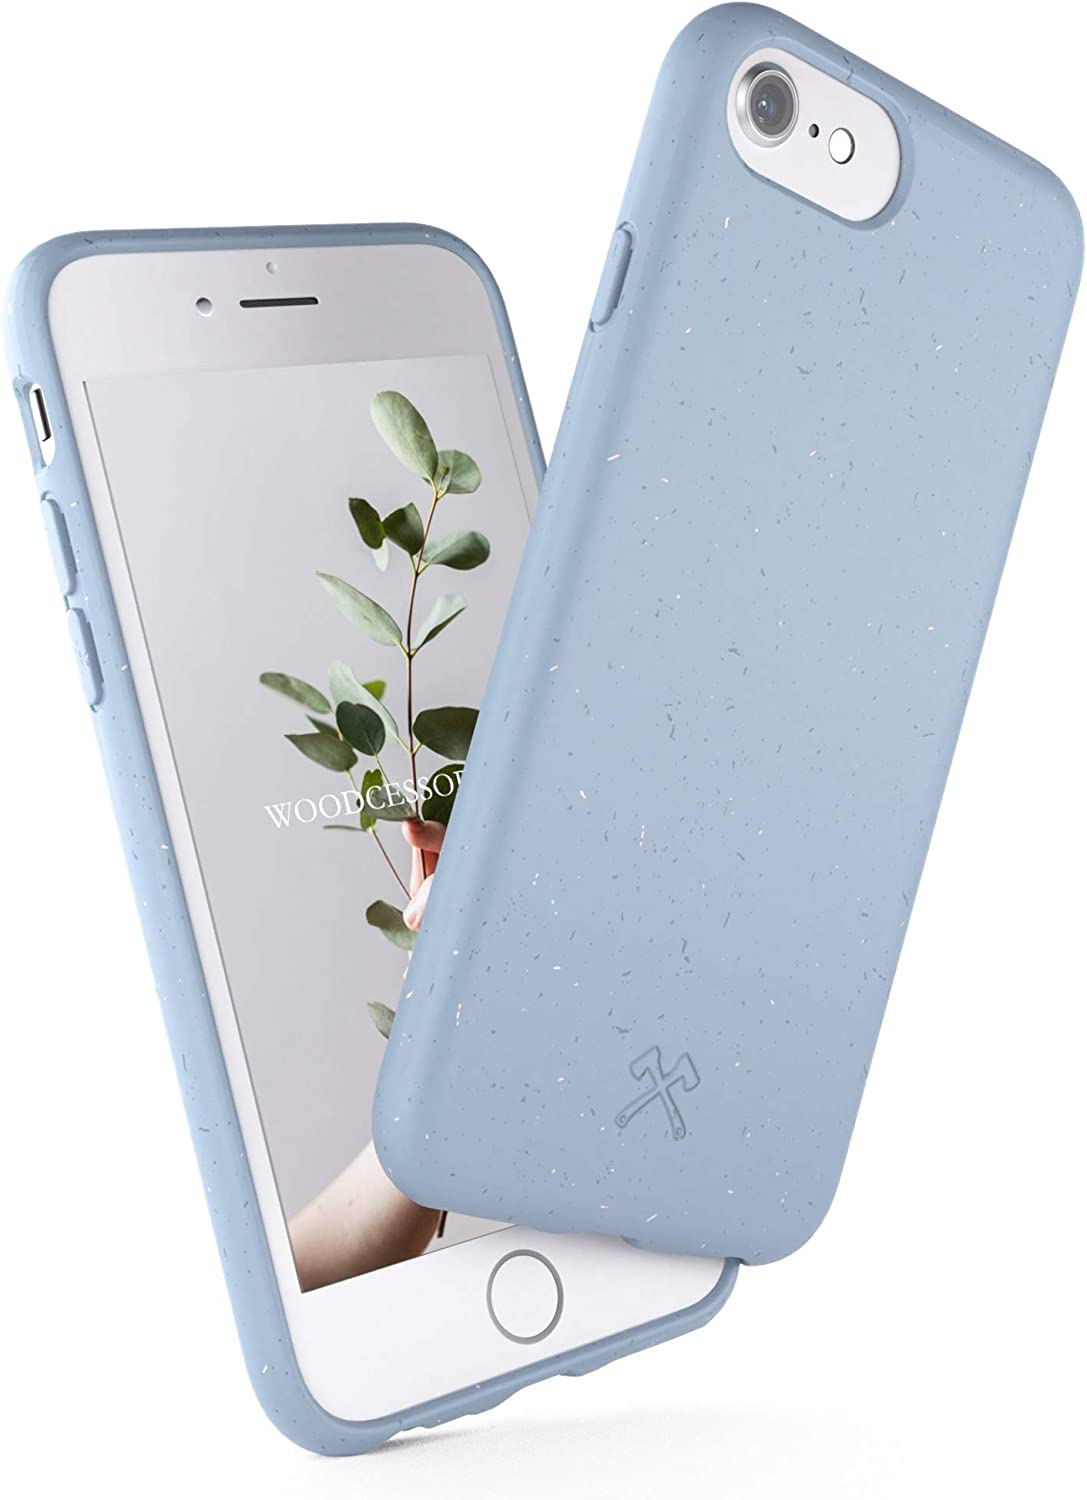 Woodcessories - Antibacterial Organic Case Compatible with iPhone SE (2020) / 8/7 / 6 / 6s - Plastic Free, plantbased, compostable, self-Cleaning - Lavender Blue